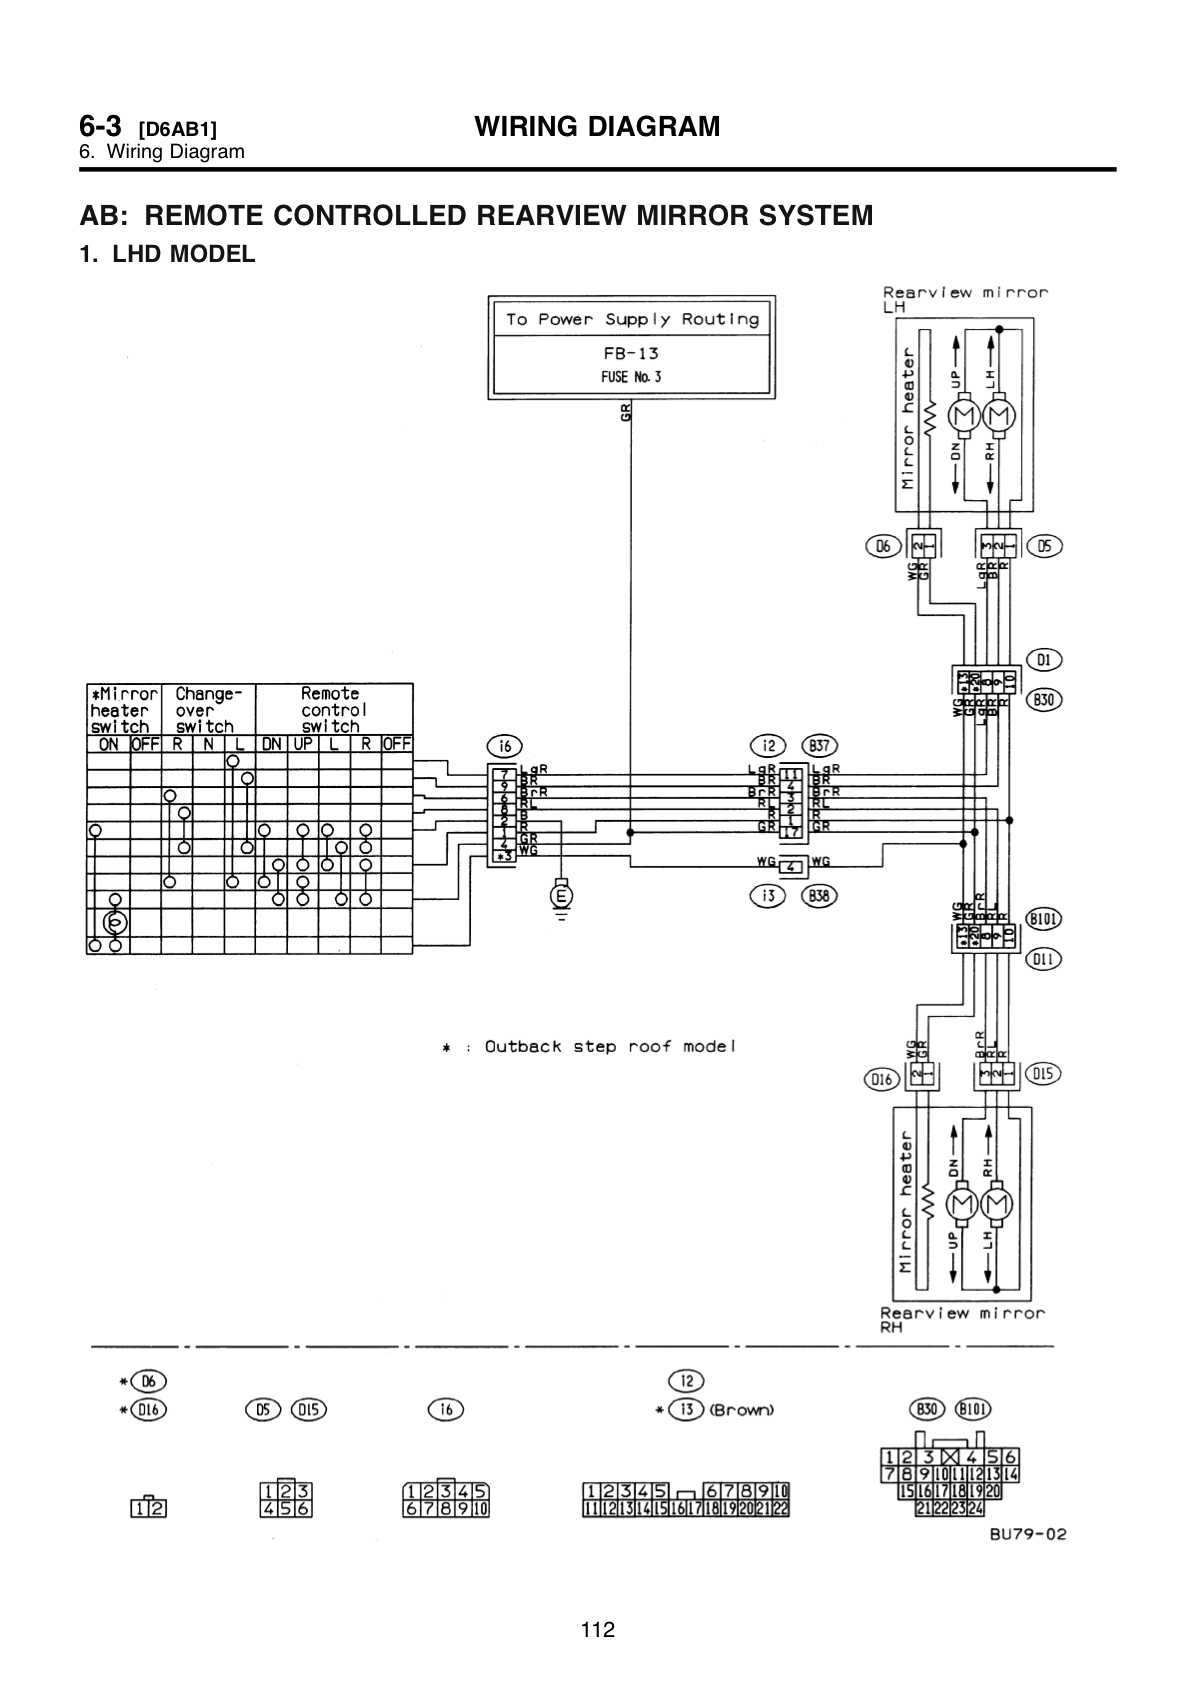 Silverado Mirror Wiring Diagram from www.designlabx.com